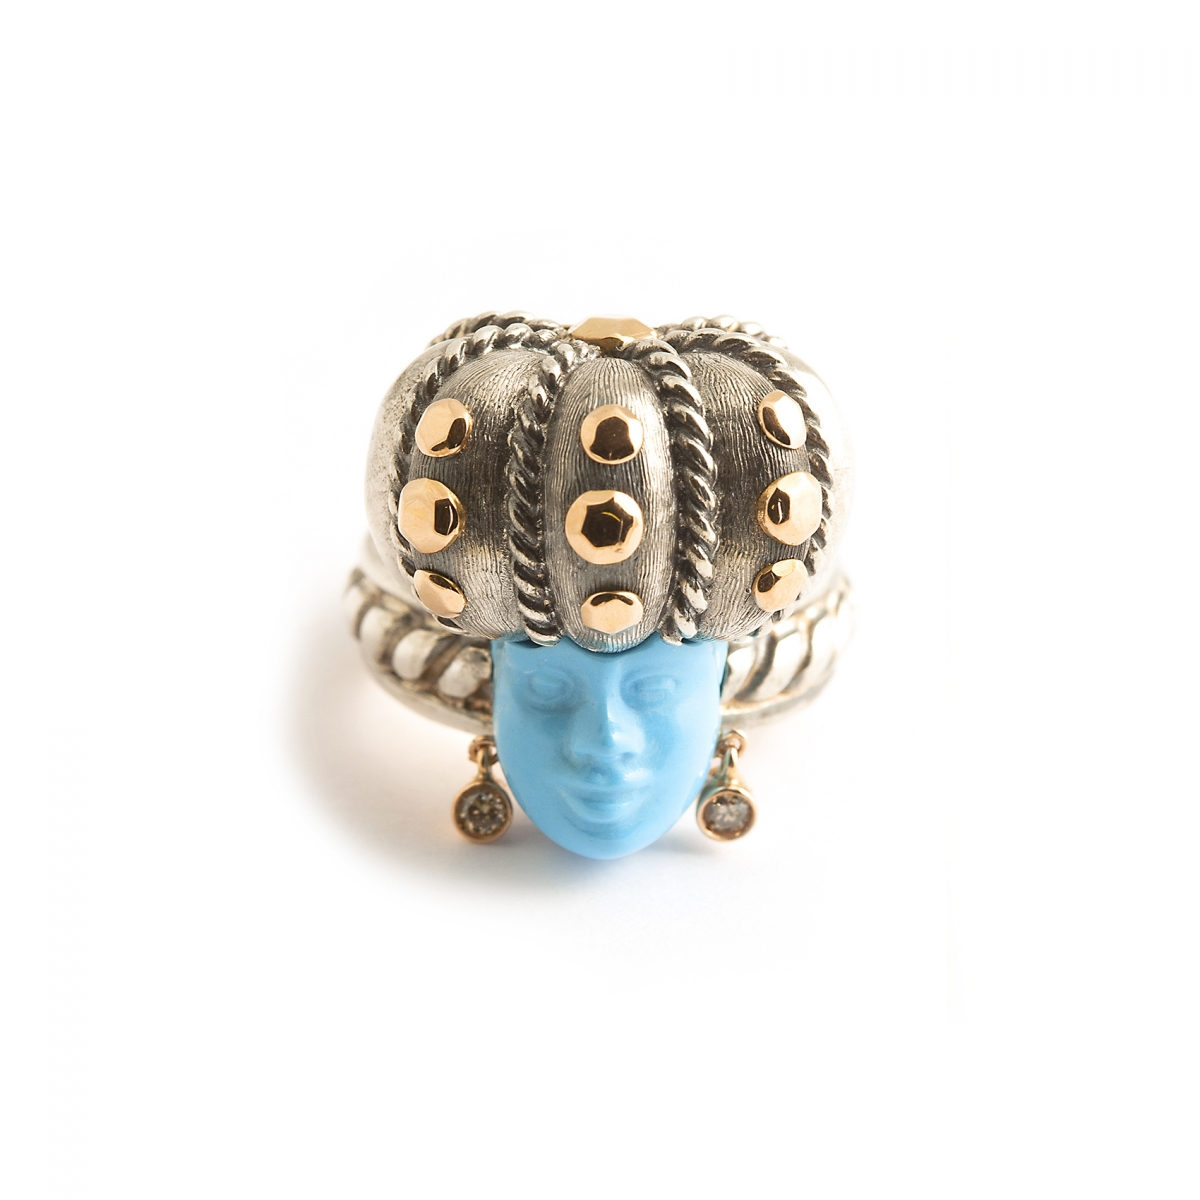 Marco Polo ring